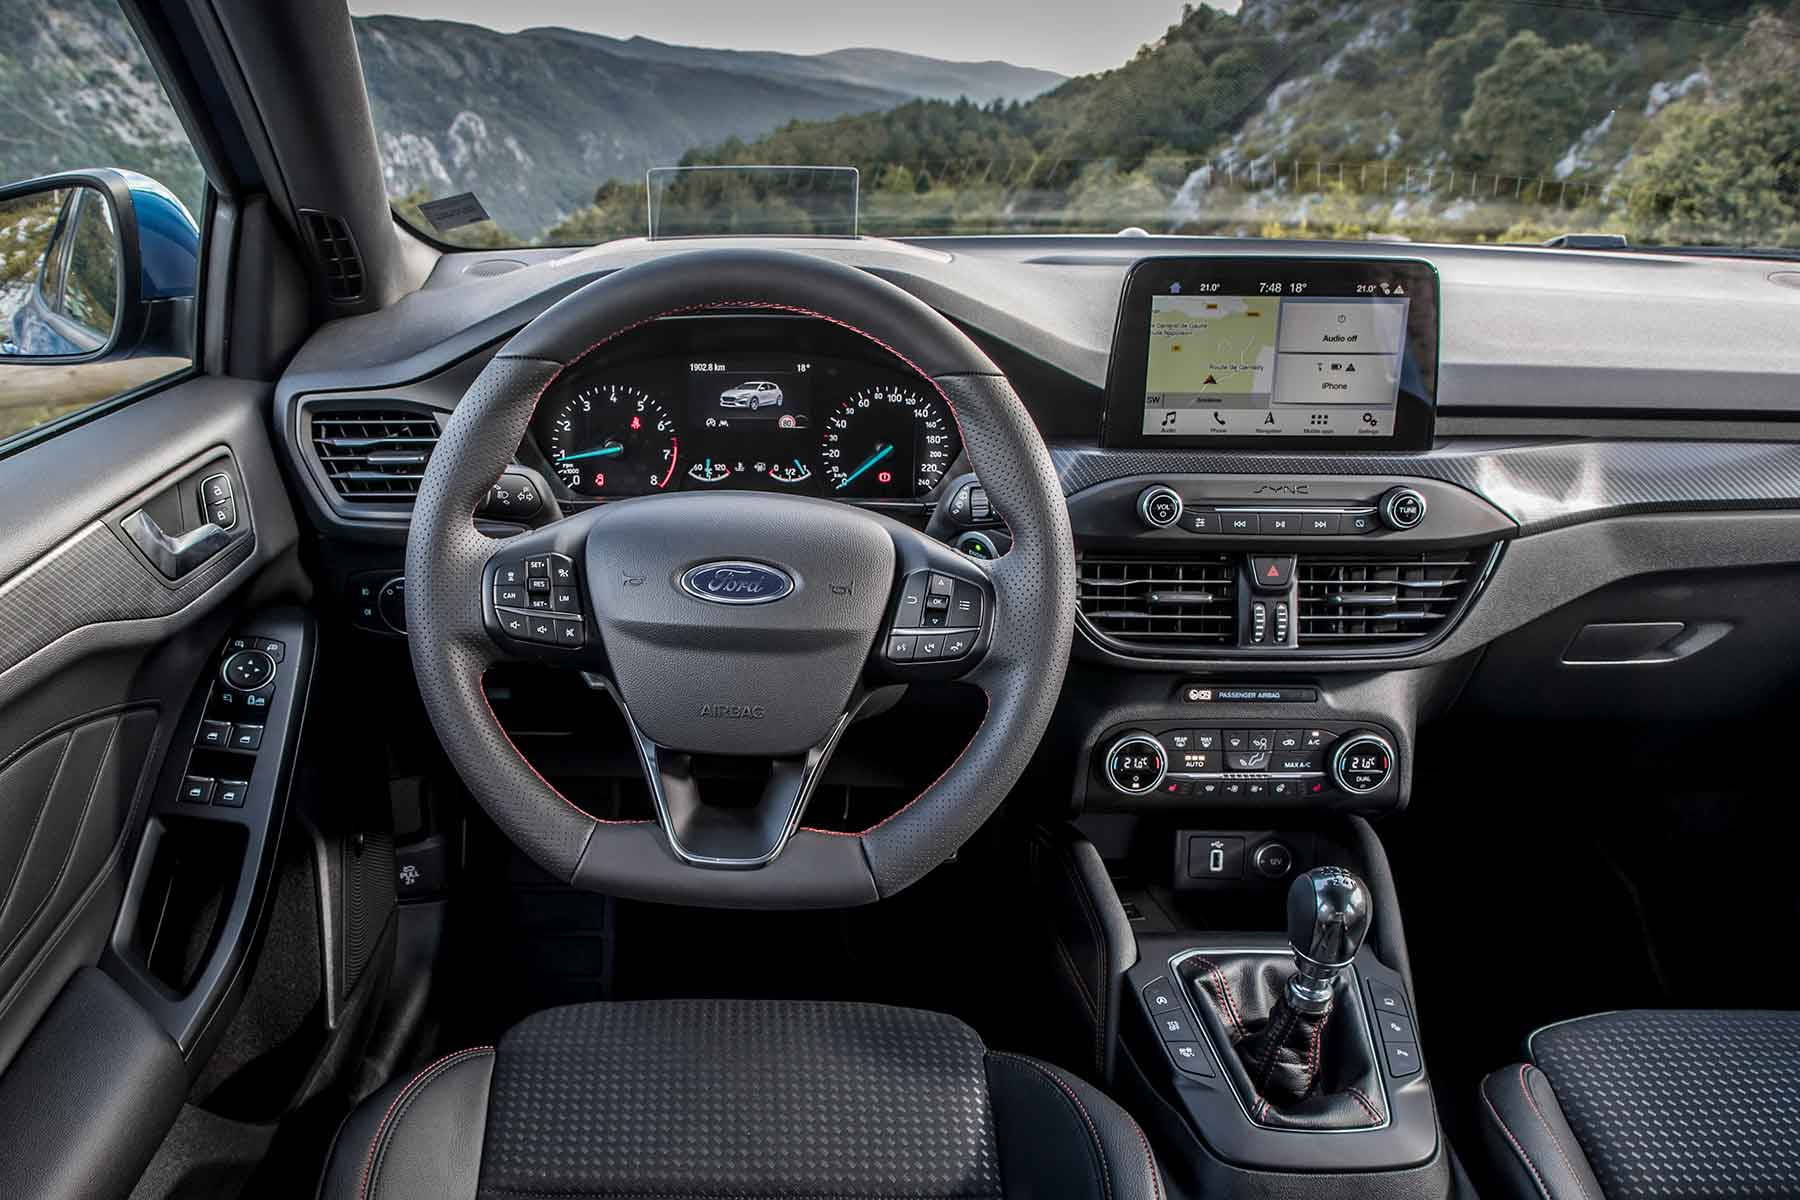 2018 ford focus review everything you need to know rh motoringresearch com